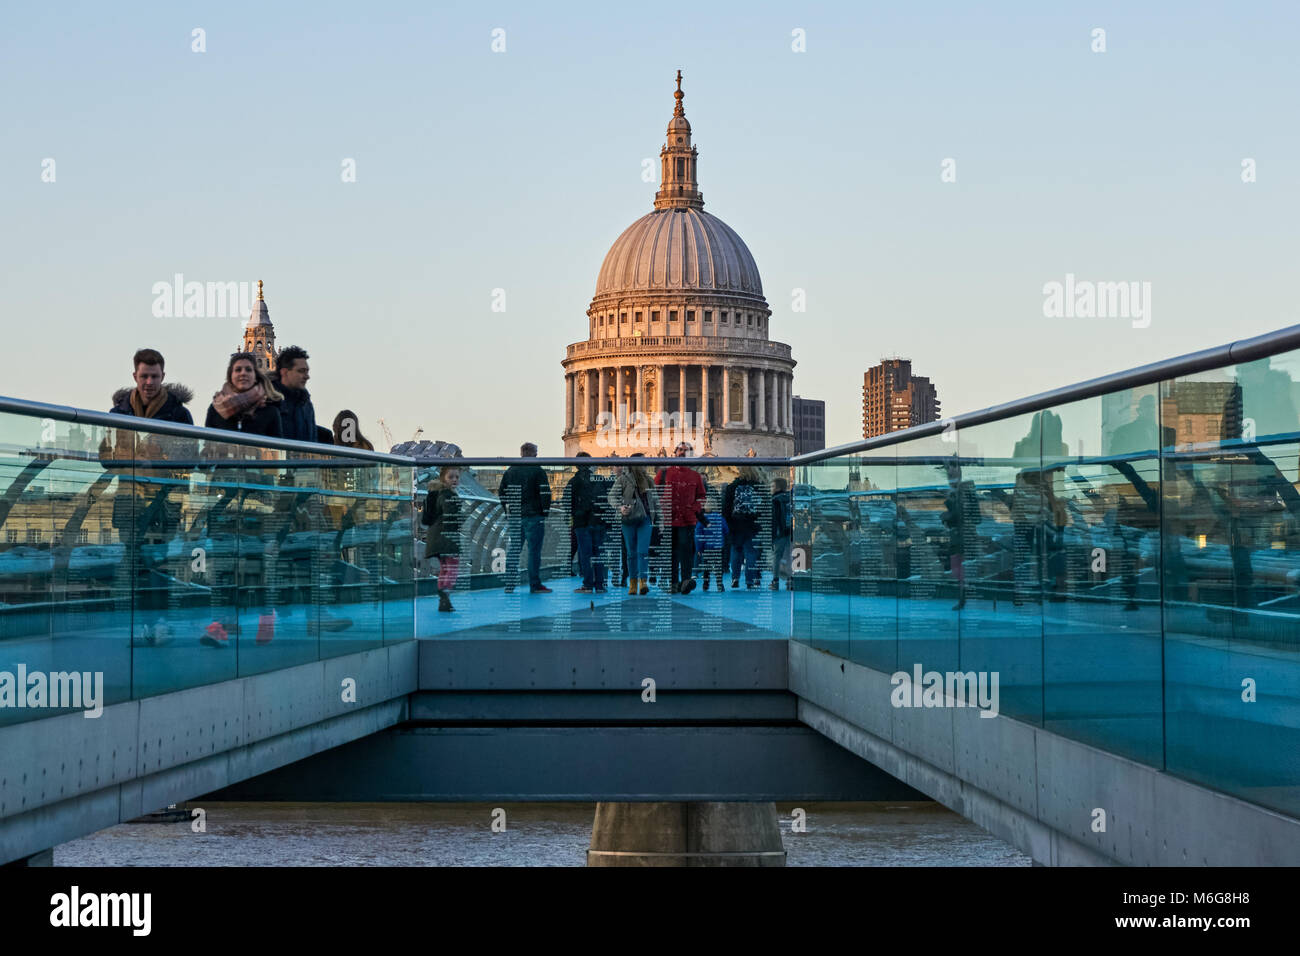 People on the Millennium Bridge with St Paul's Cathedral in the background, London England United Kingdom UK - Stock Image